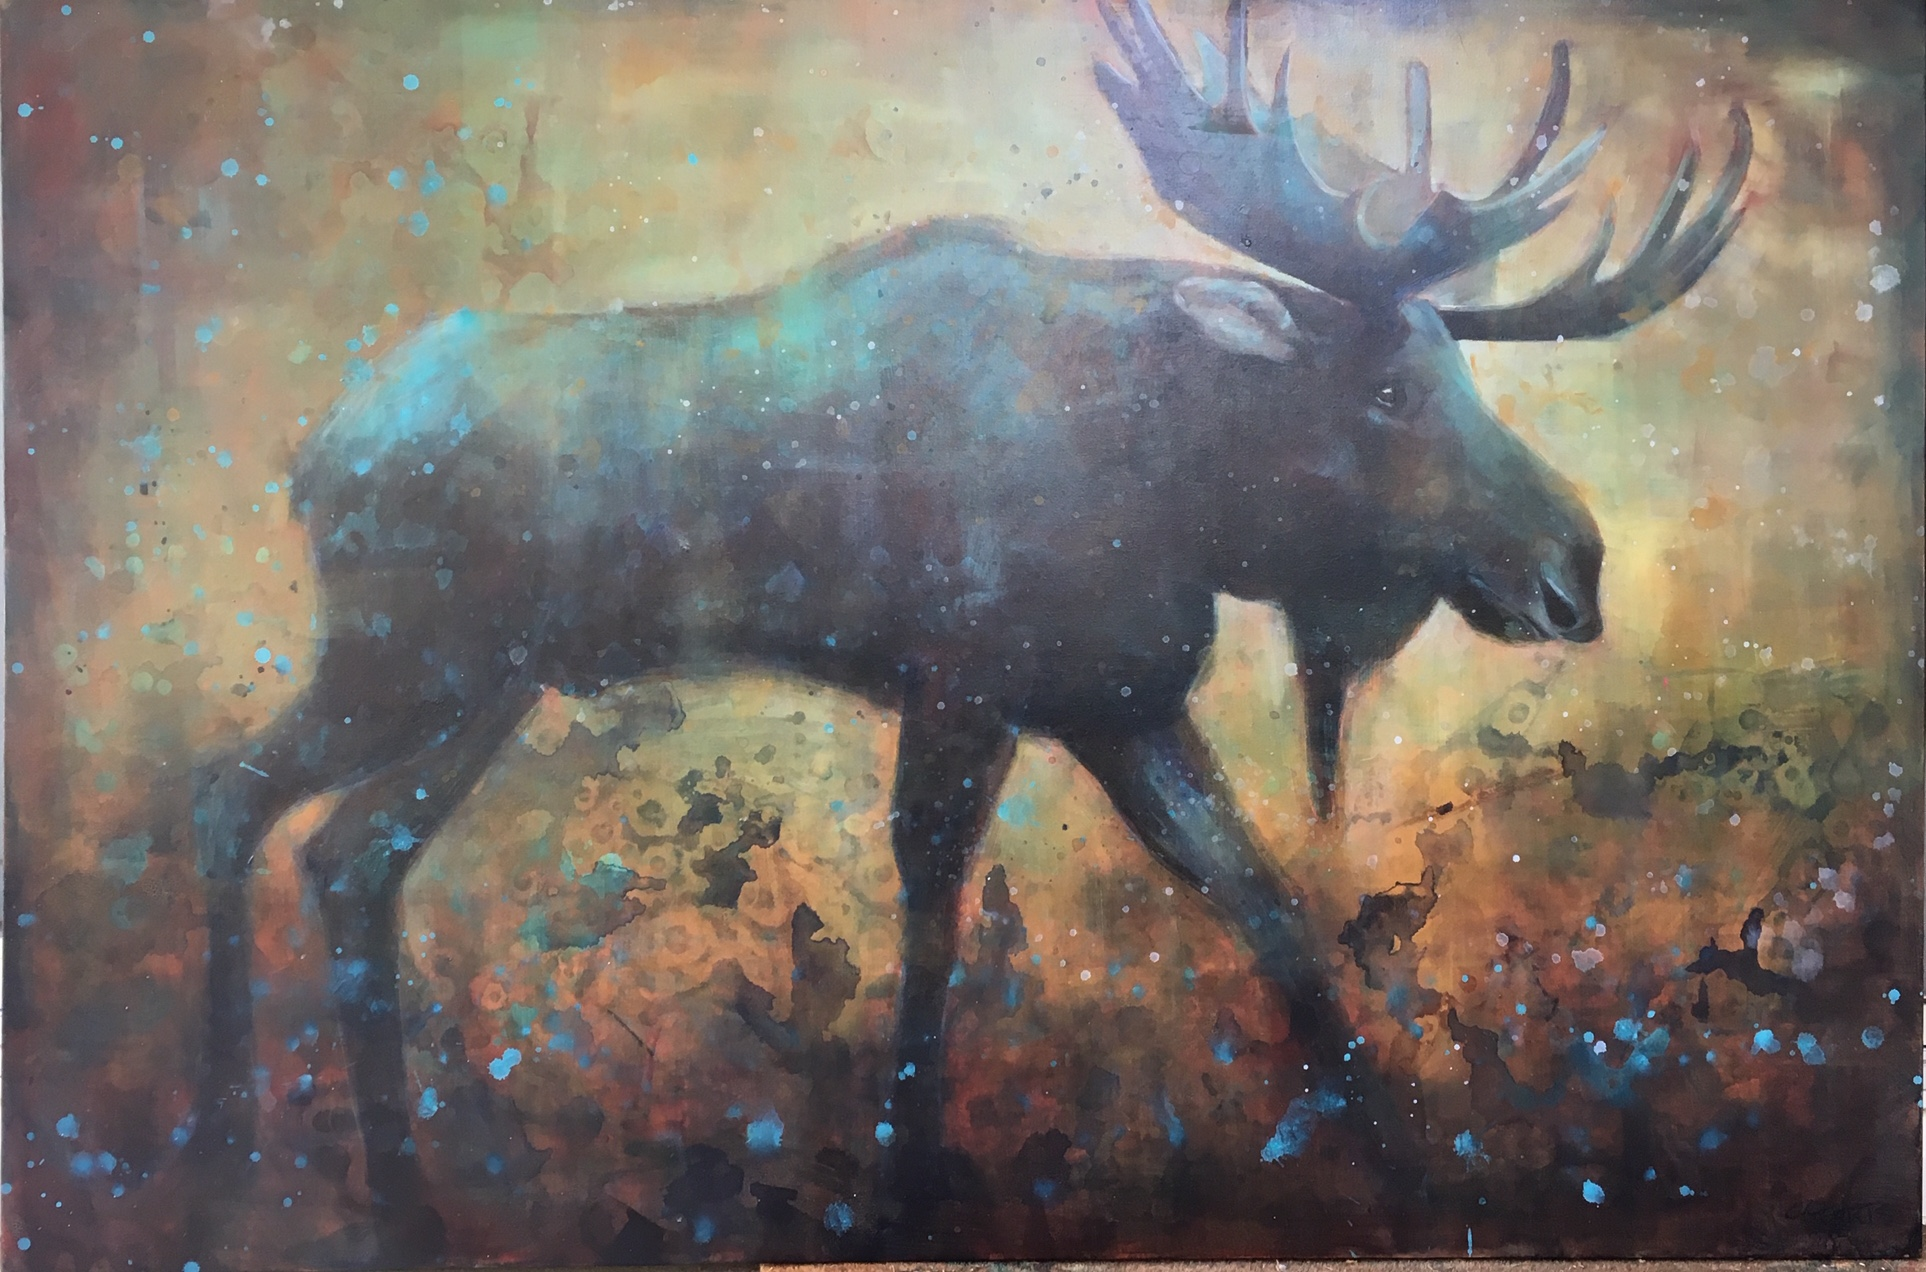 On the Move, acrylic moose painting by Connie Geerts | Effusion Art Gallery + Cast Glass Studio, Invermere BC